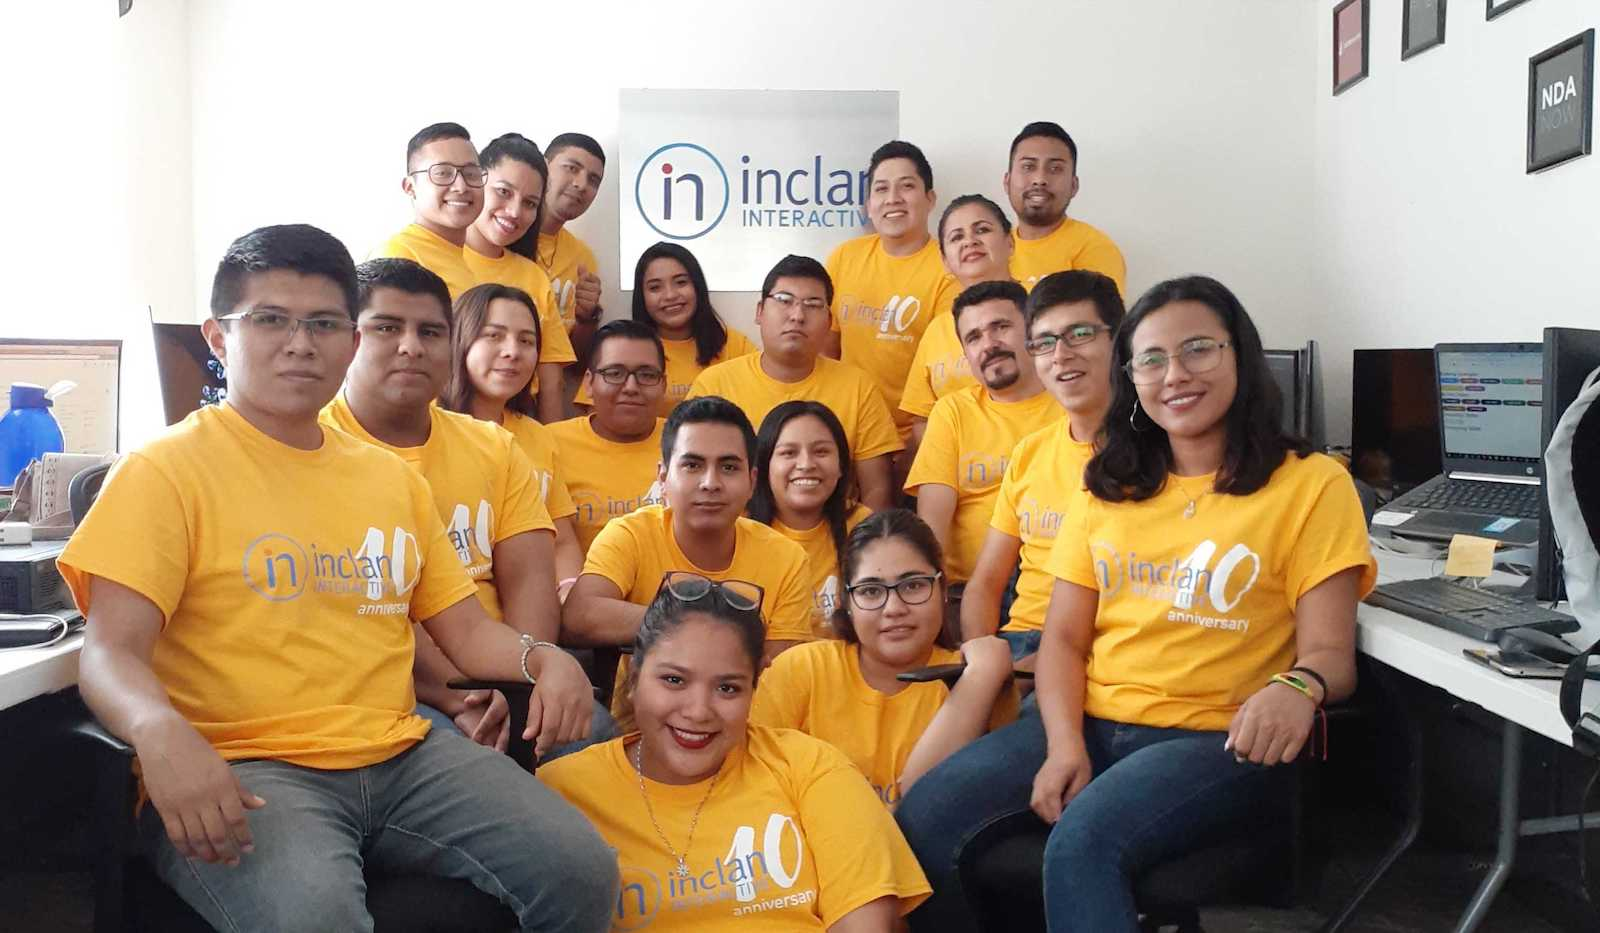 Inclan Cerro Office